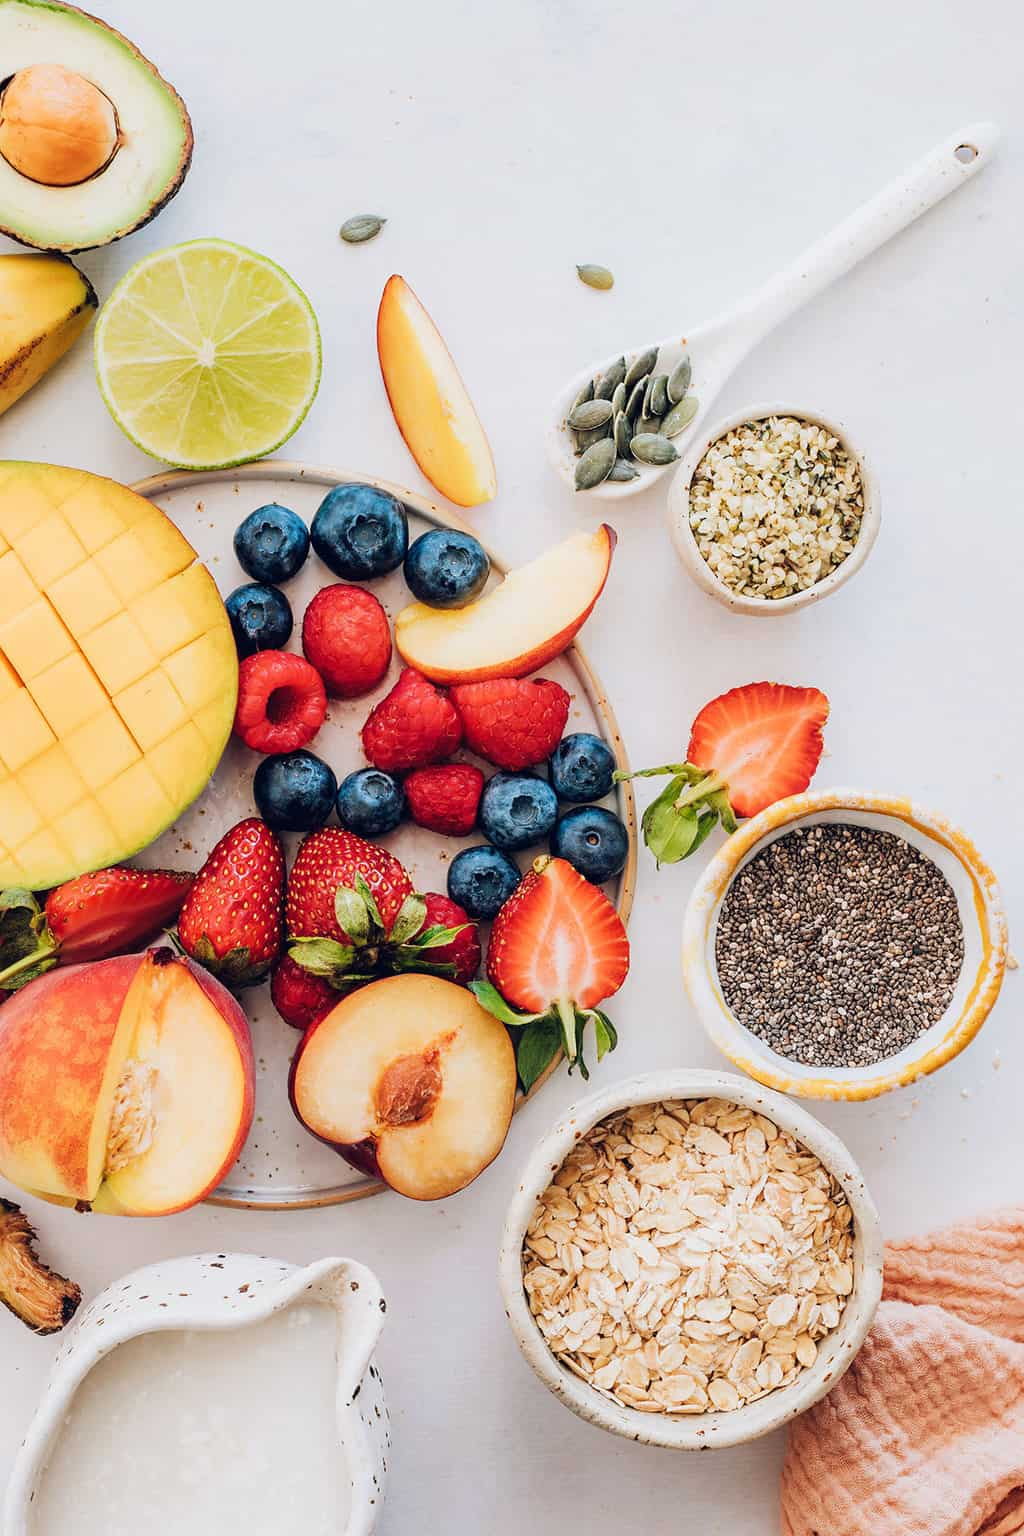 Ingredients for Summer Overnight Oat Recipes